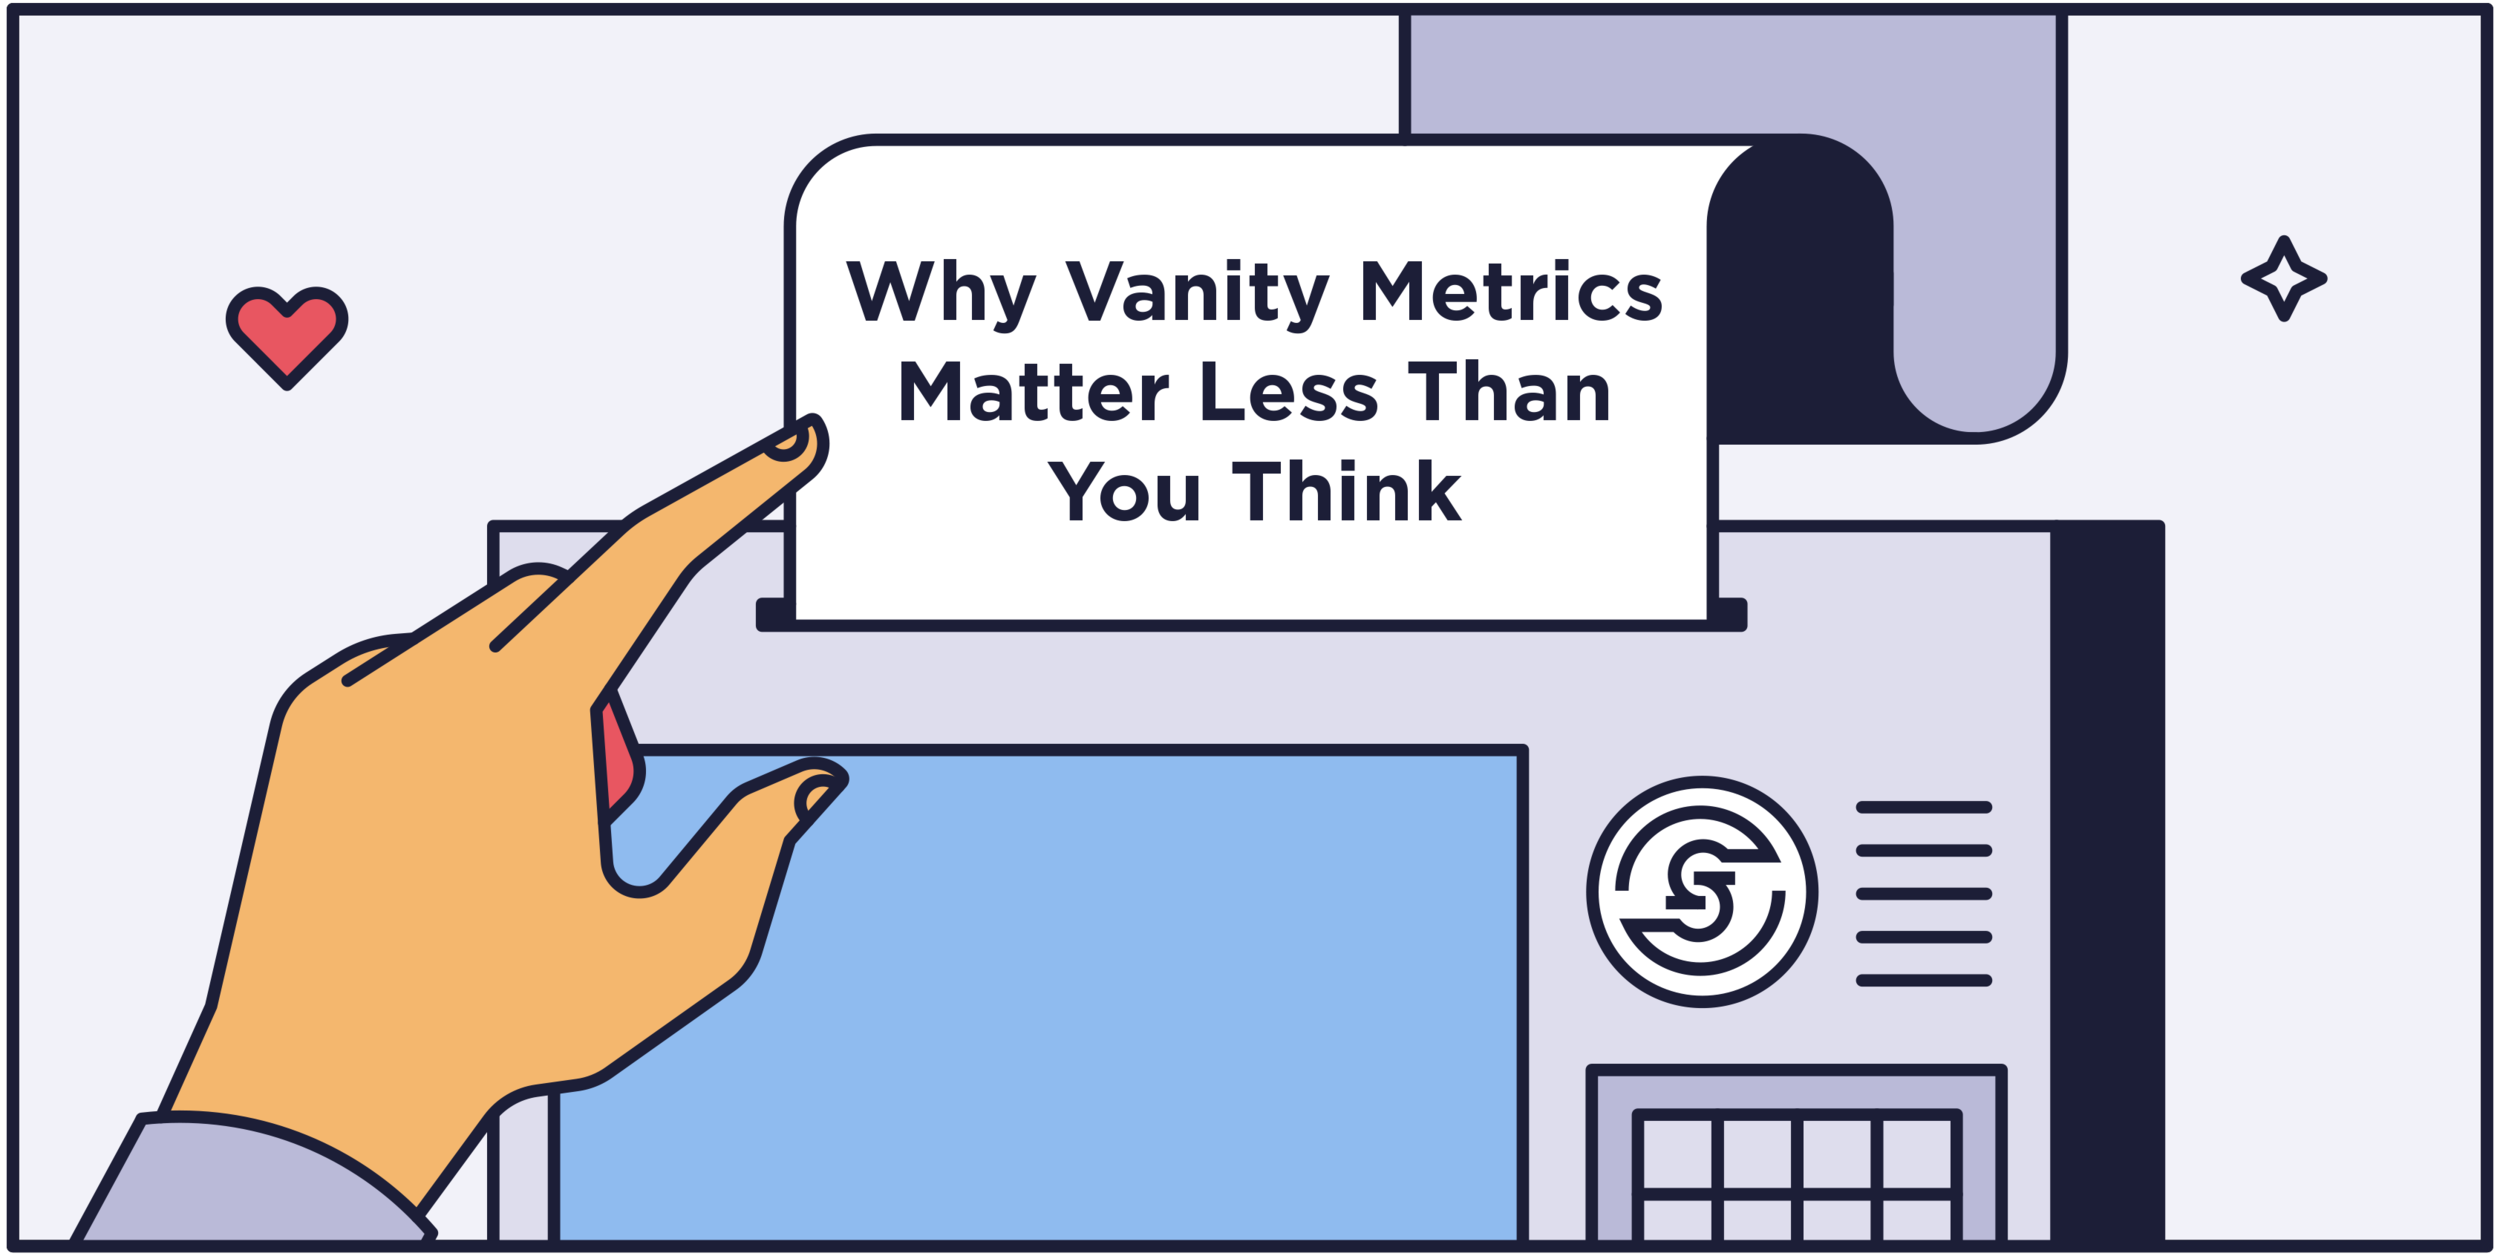 Why Vanity Metrics Matter Less Than You Think_2.png